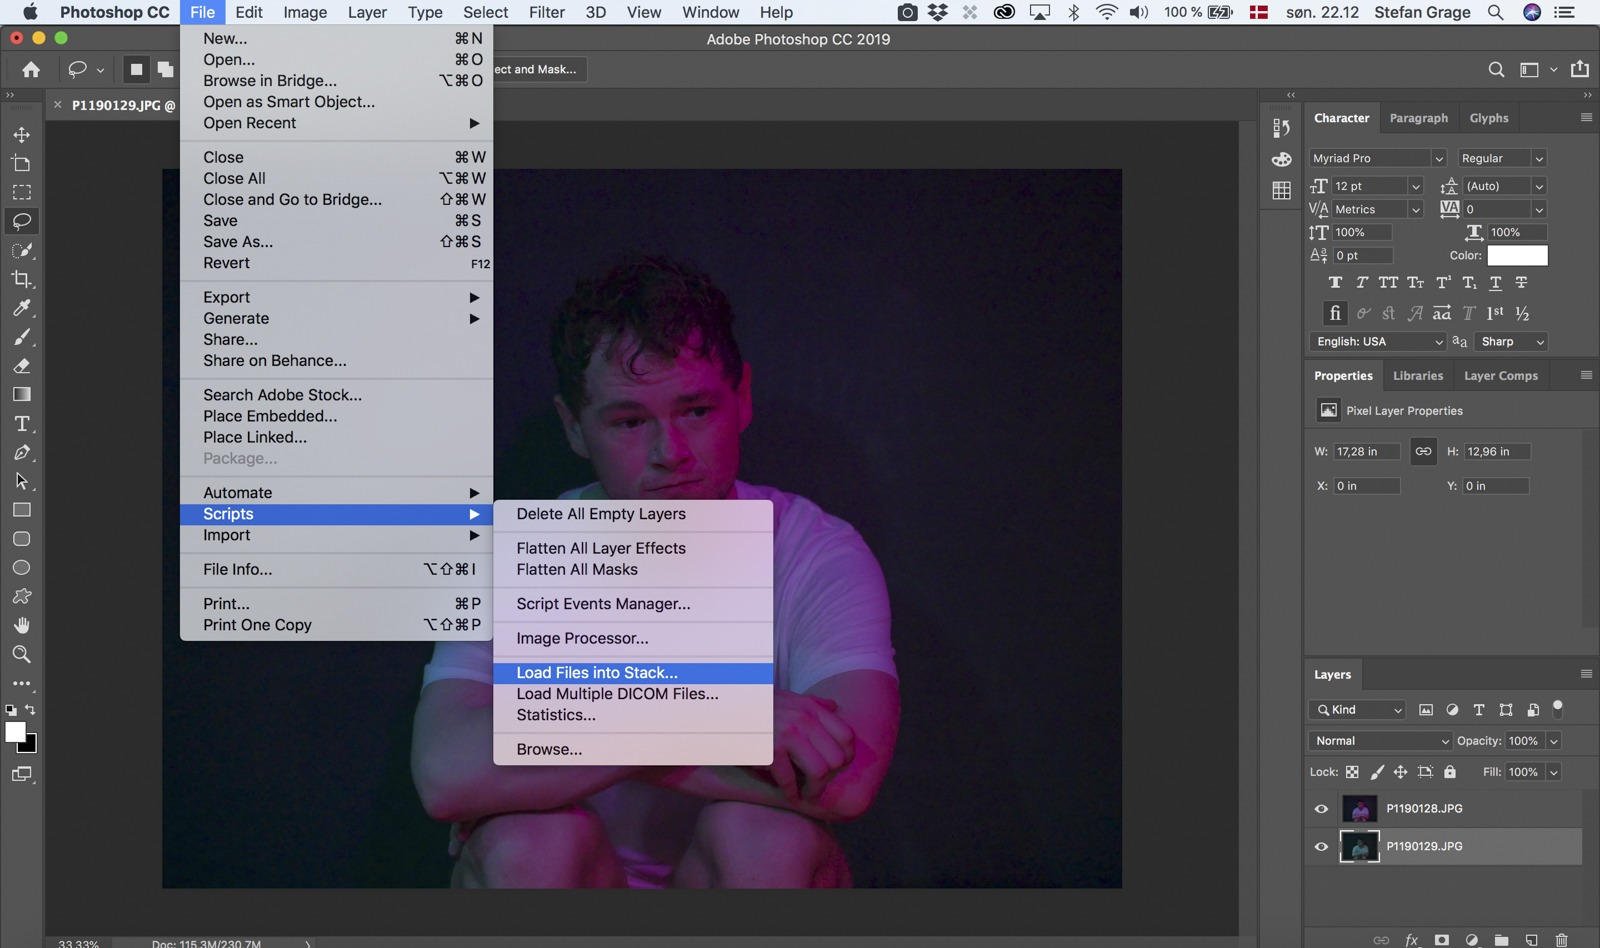 Photoshop: Open files as layers from Photoshop